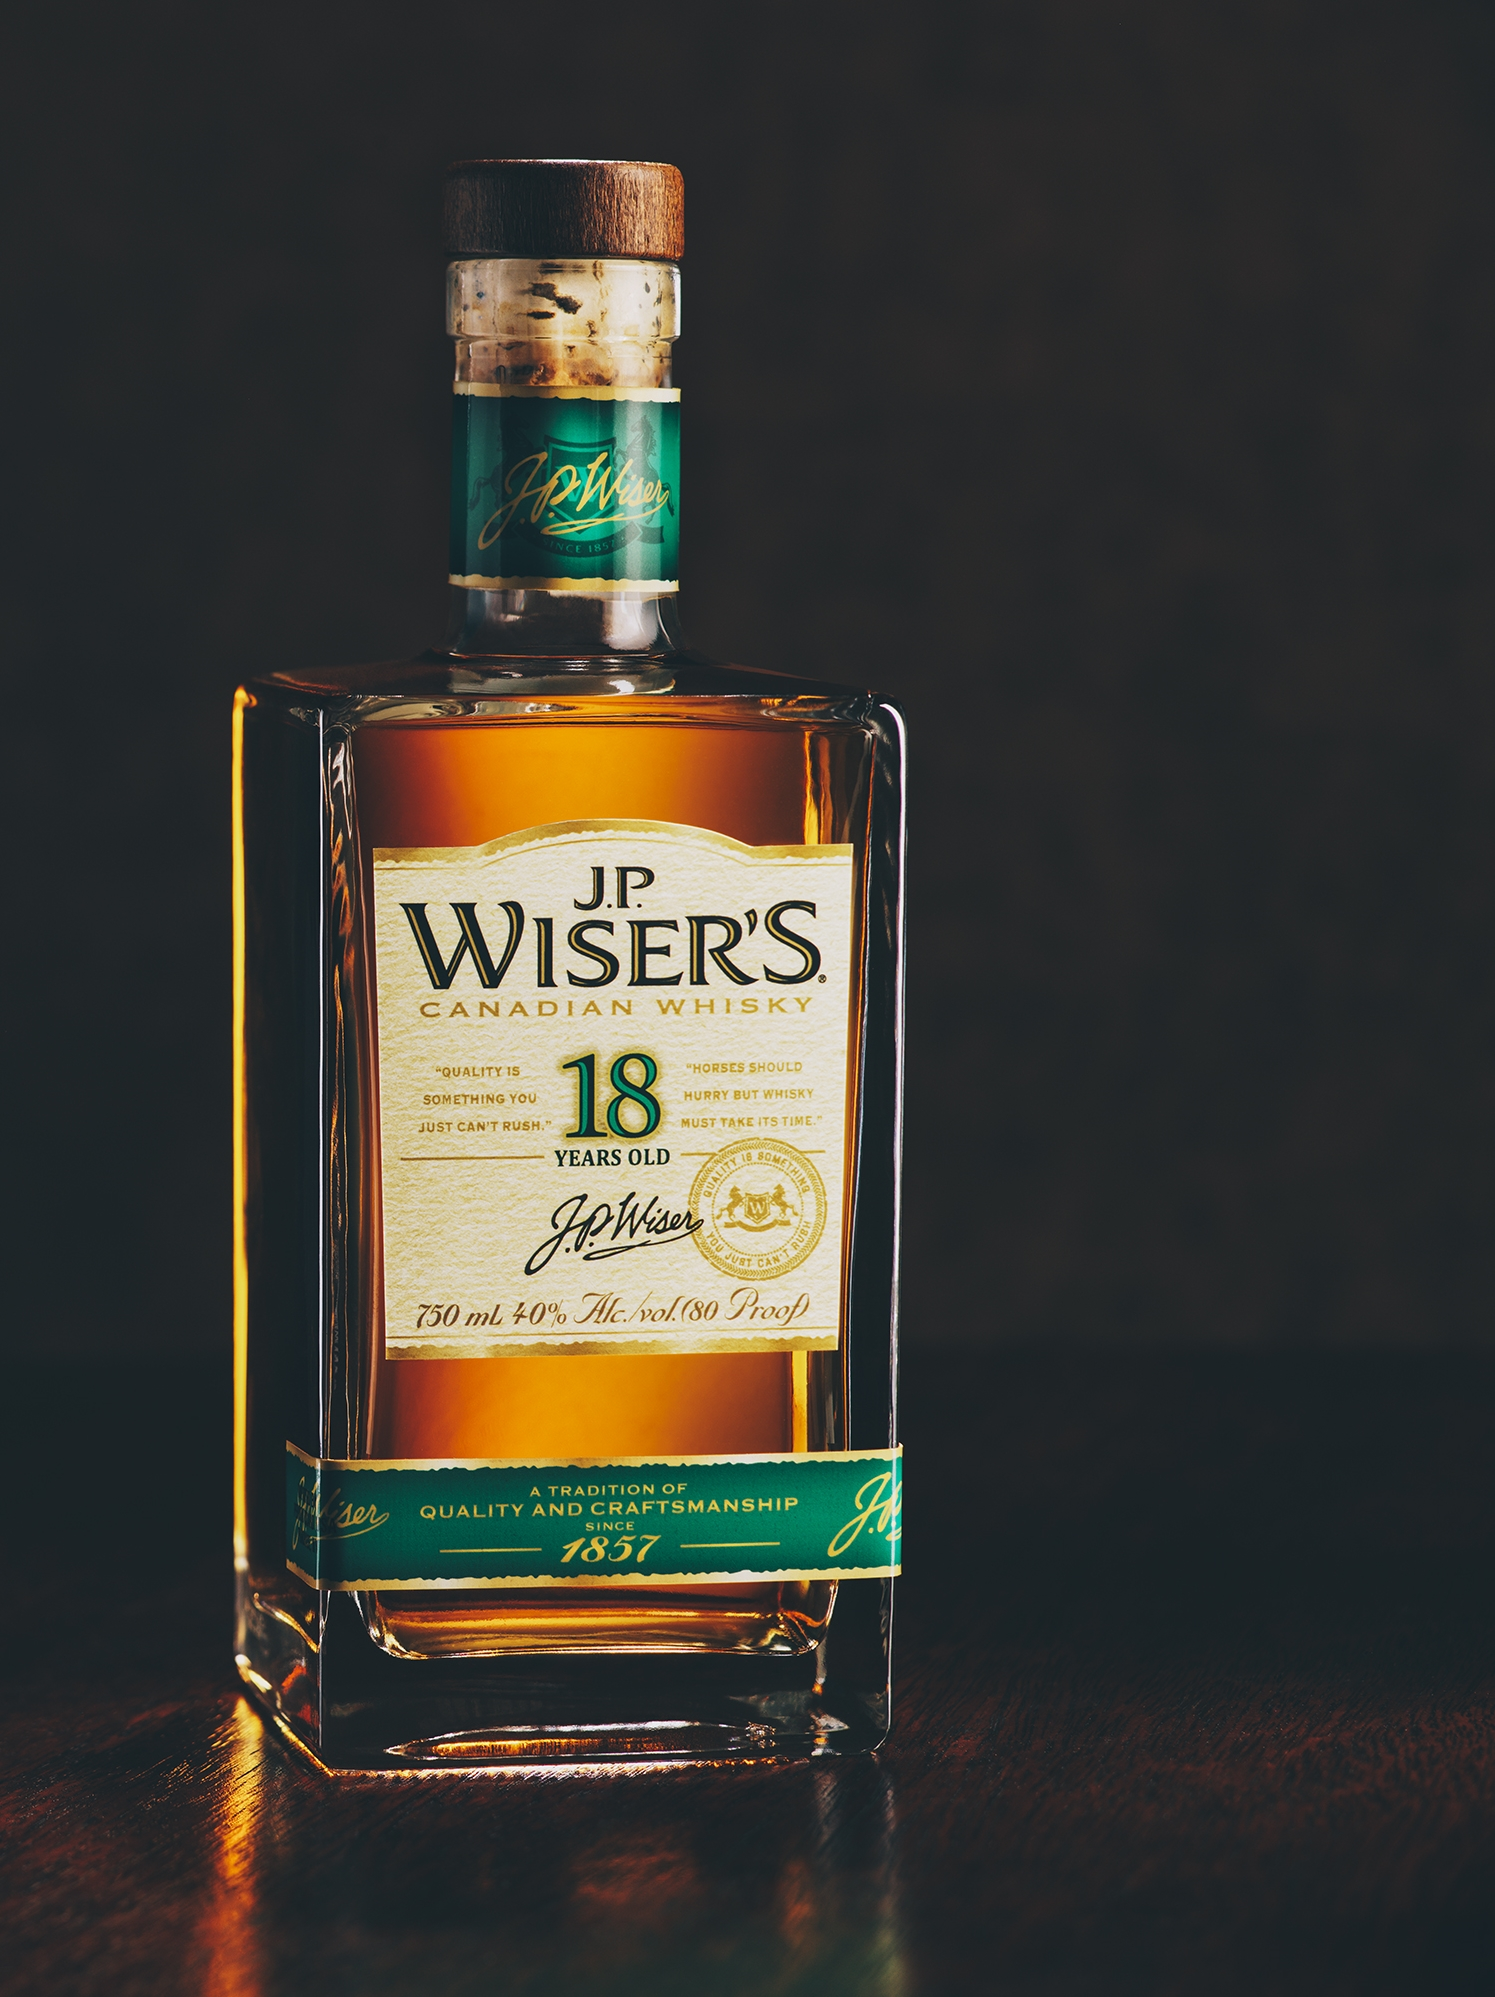 wisers whiskey advertising alcohol toronto fuze reps